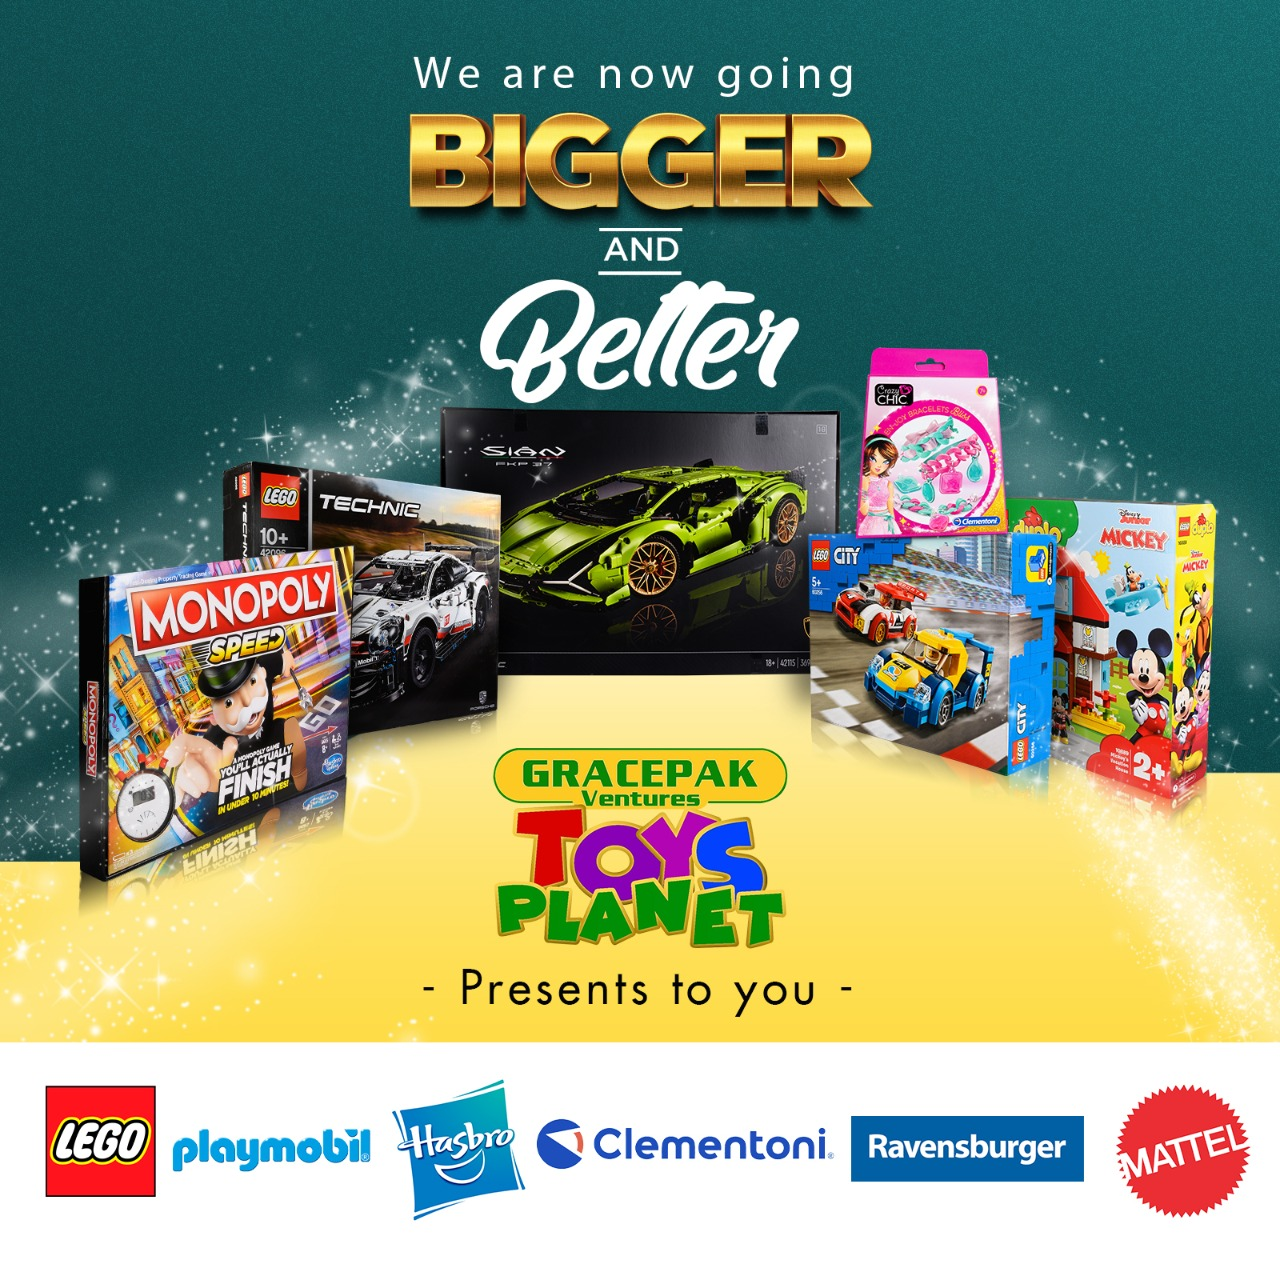 GRACEPAK Ventures- TOYS PLANET: We Are Now Going BIGGER And BETTER